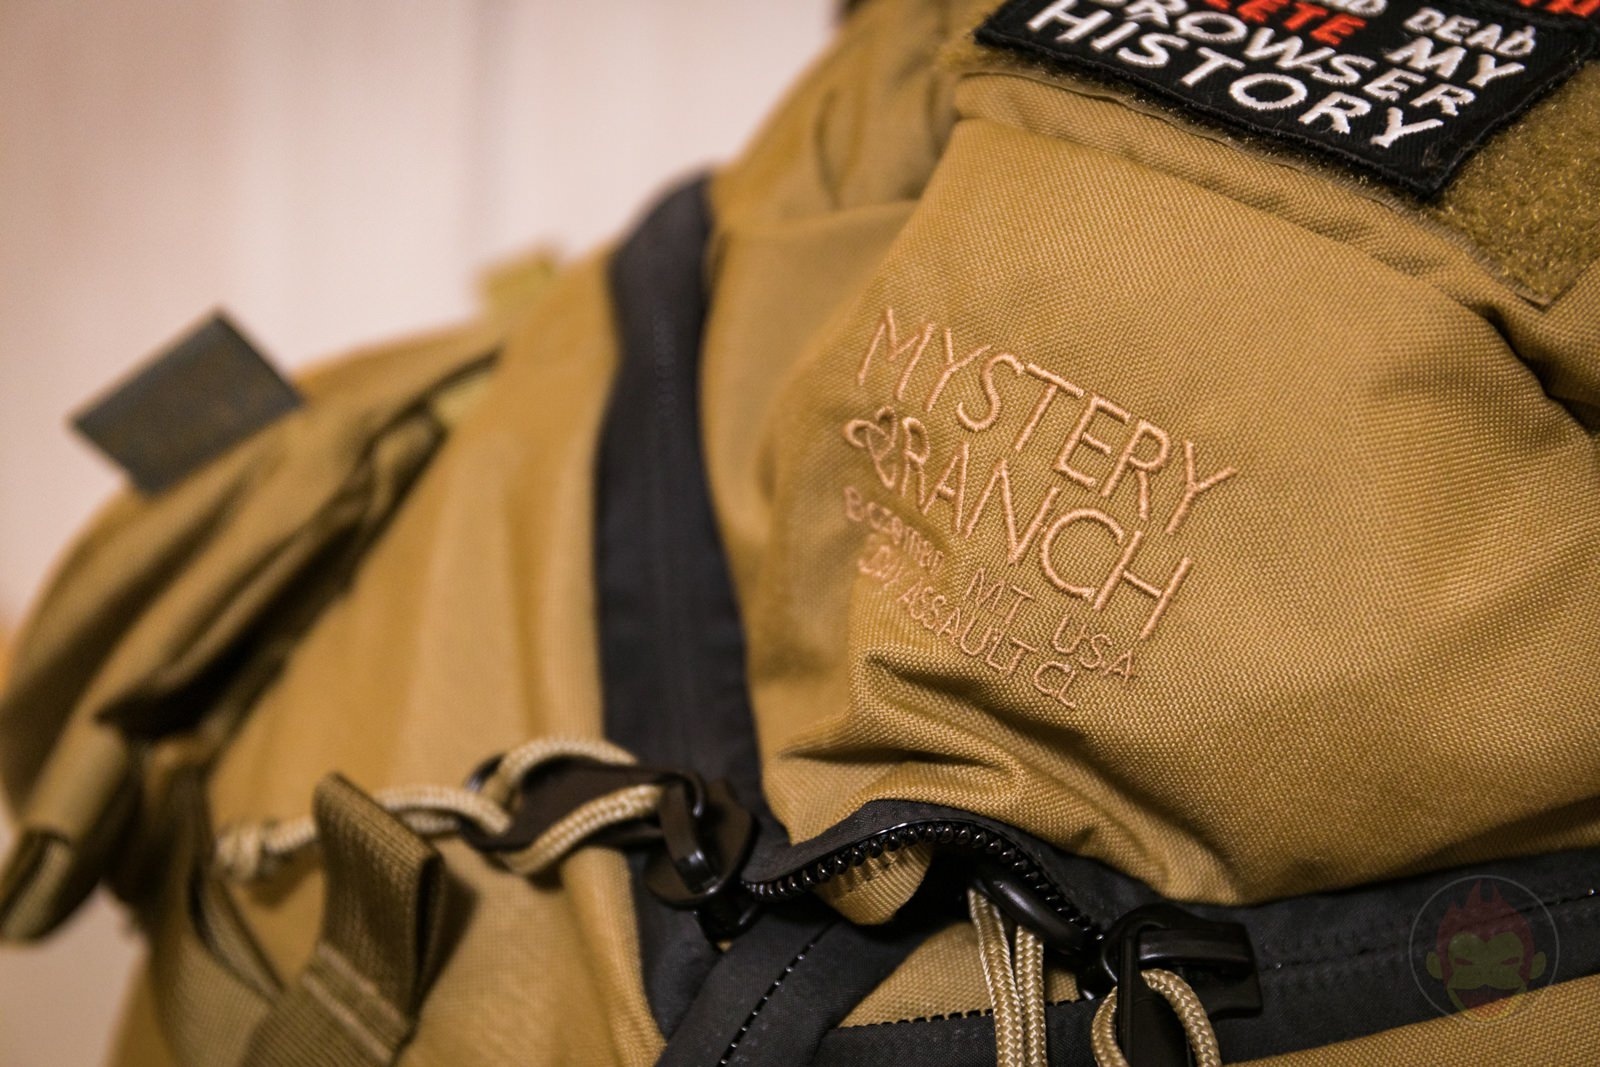 MYSTERY RANCH 3Day Assault CL Review 20